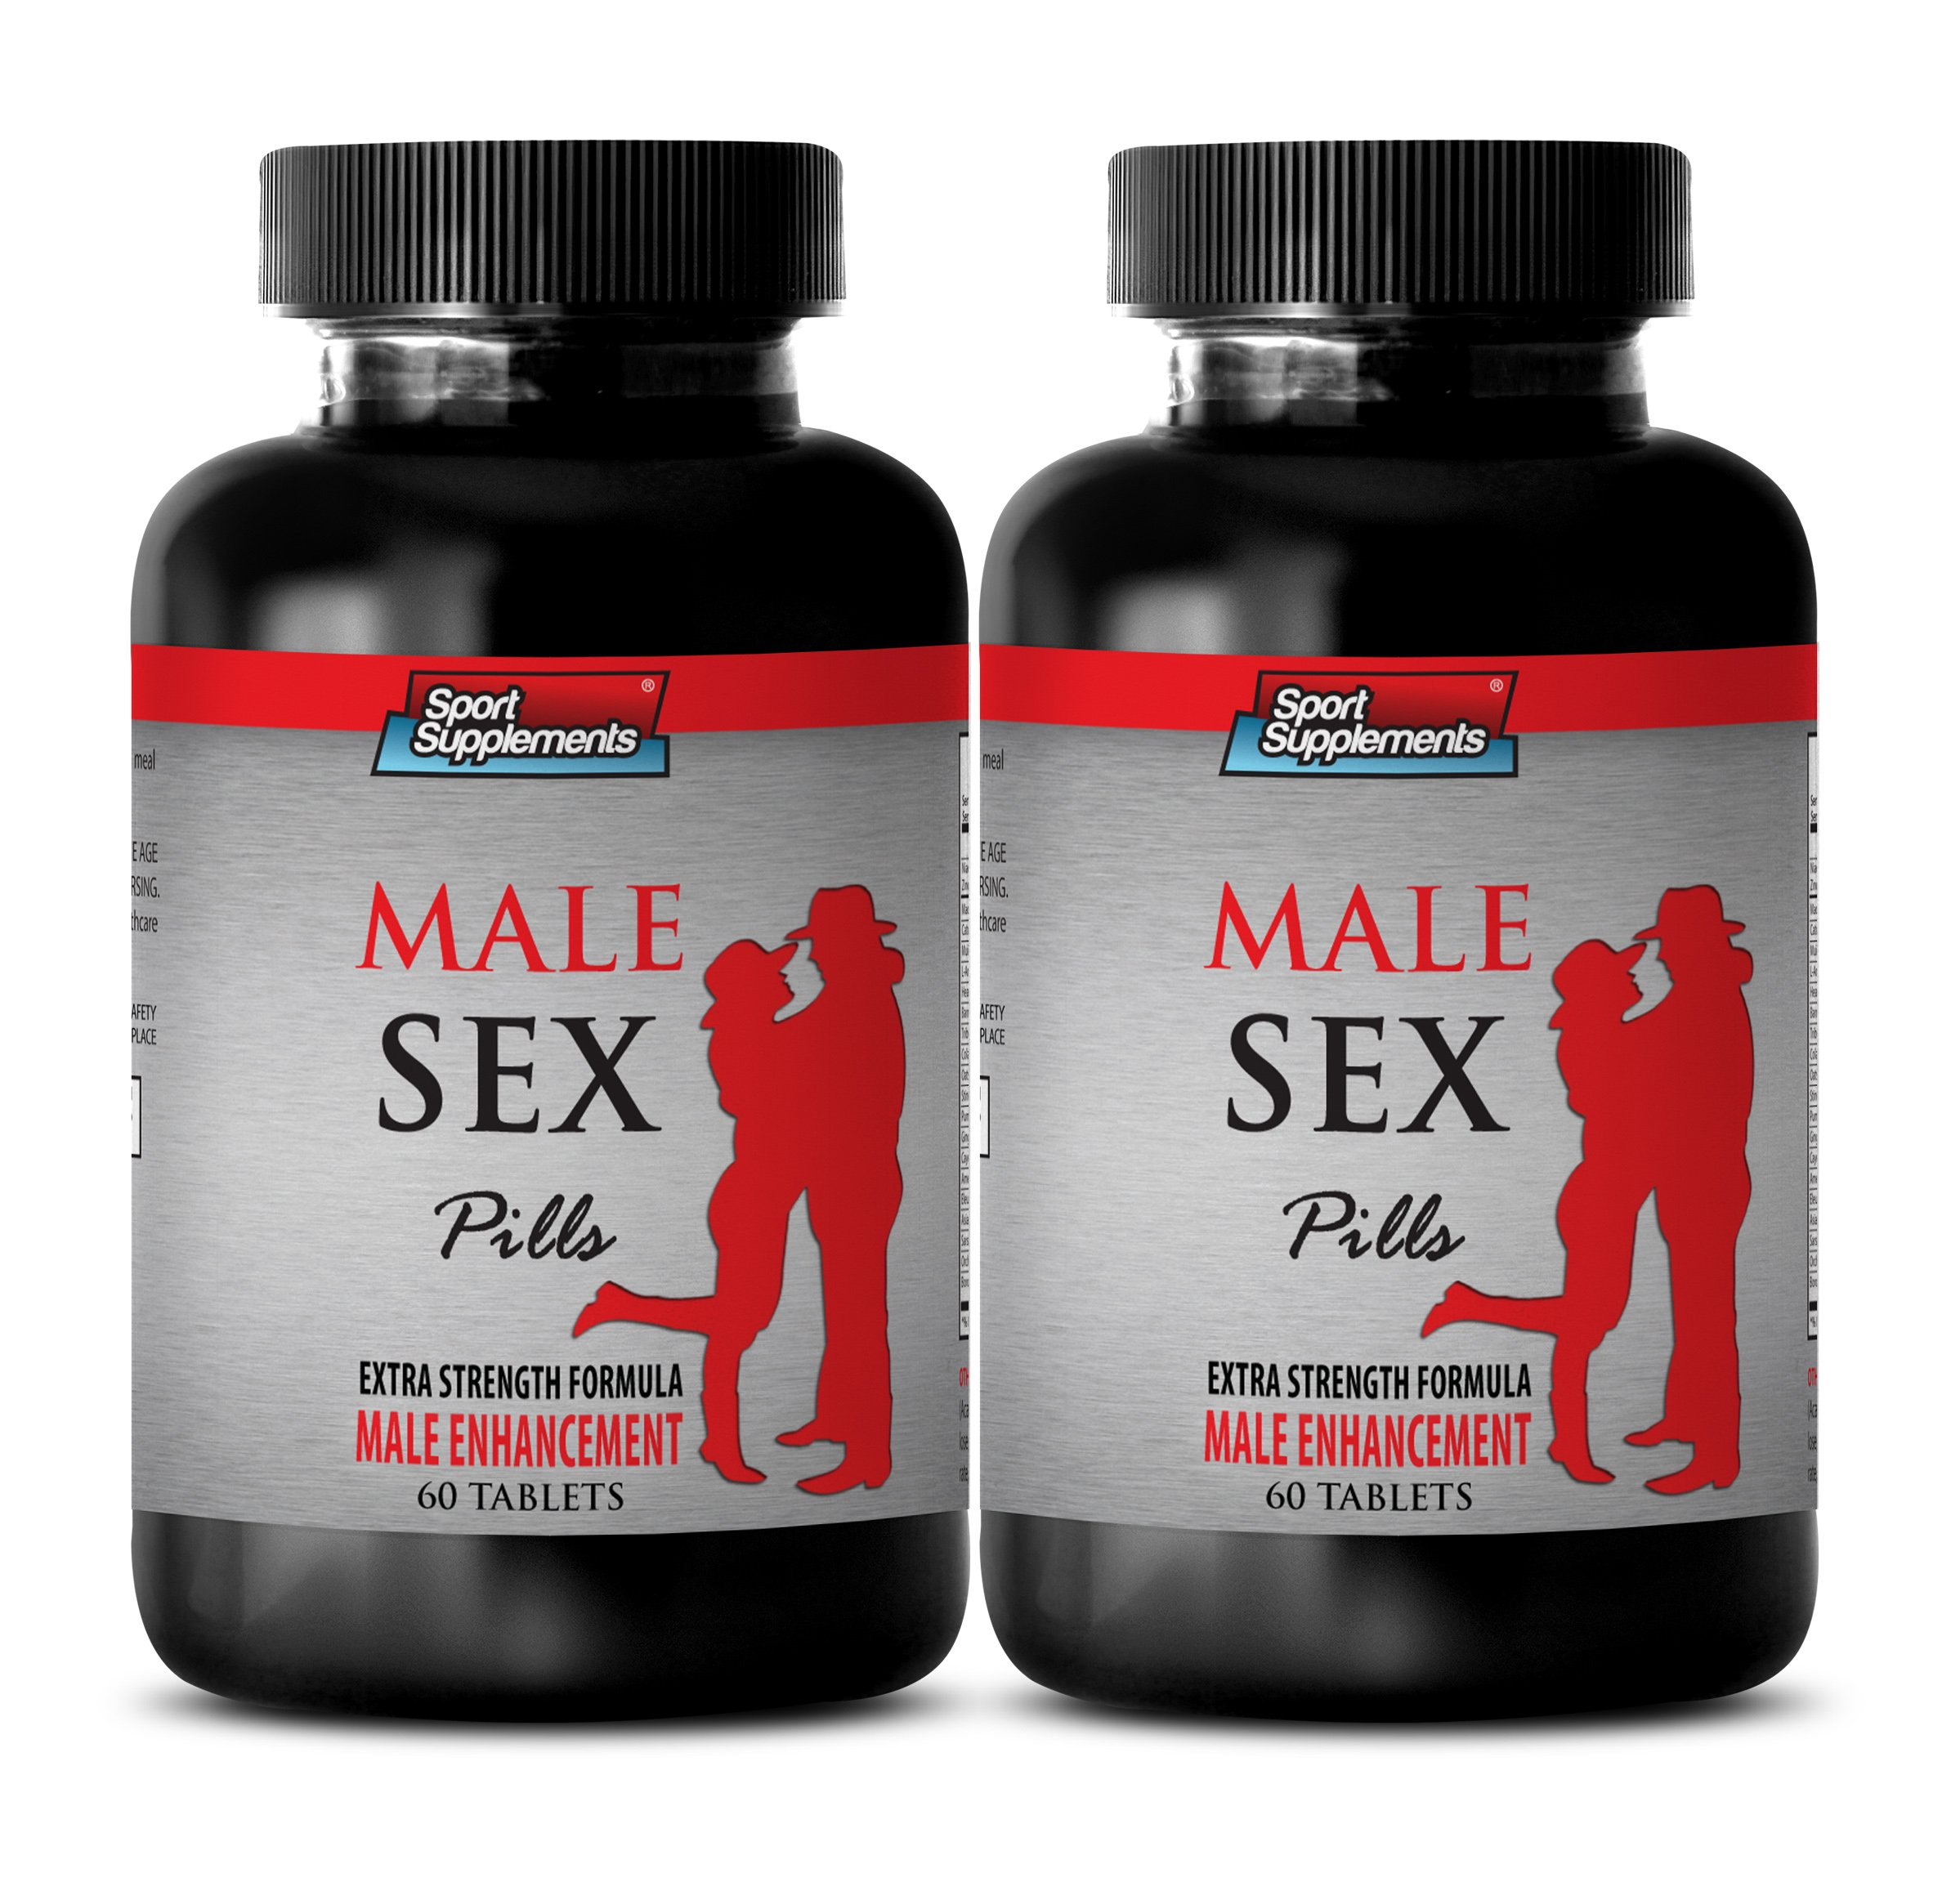 sex drive pills for men - MALE SEX PILLS - EXTRA STRENGTH FORMULA - MALE ENHANCEMENT - maca extract capsules - 2 Bottles (120 Tablets)